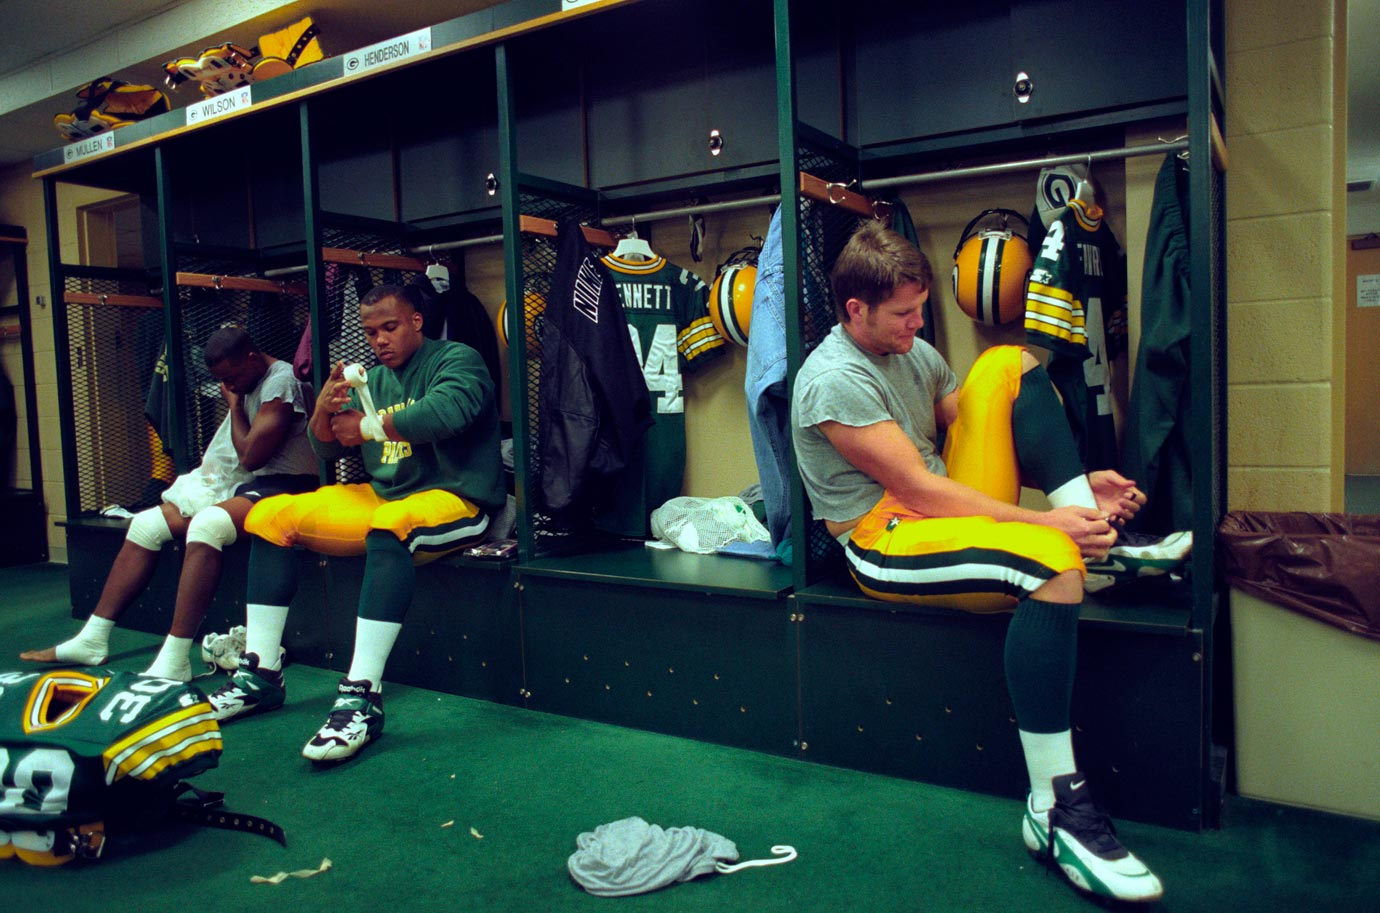 Favre ties his cleats in the locker room before Green Bay's game against Minnesota at Lambeau Field.